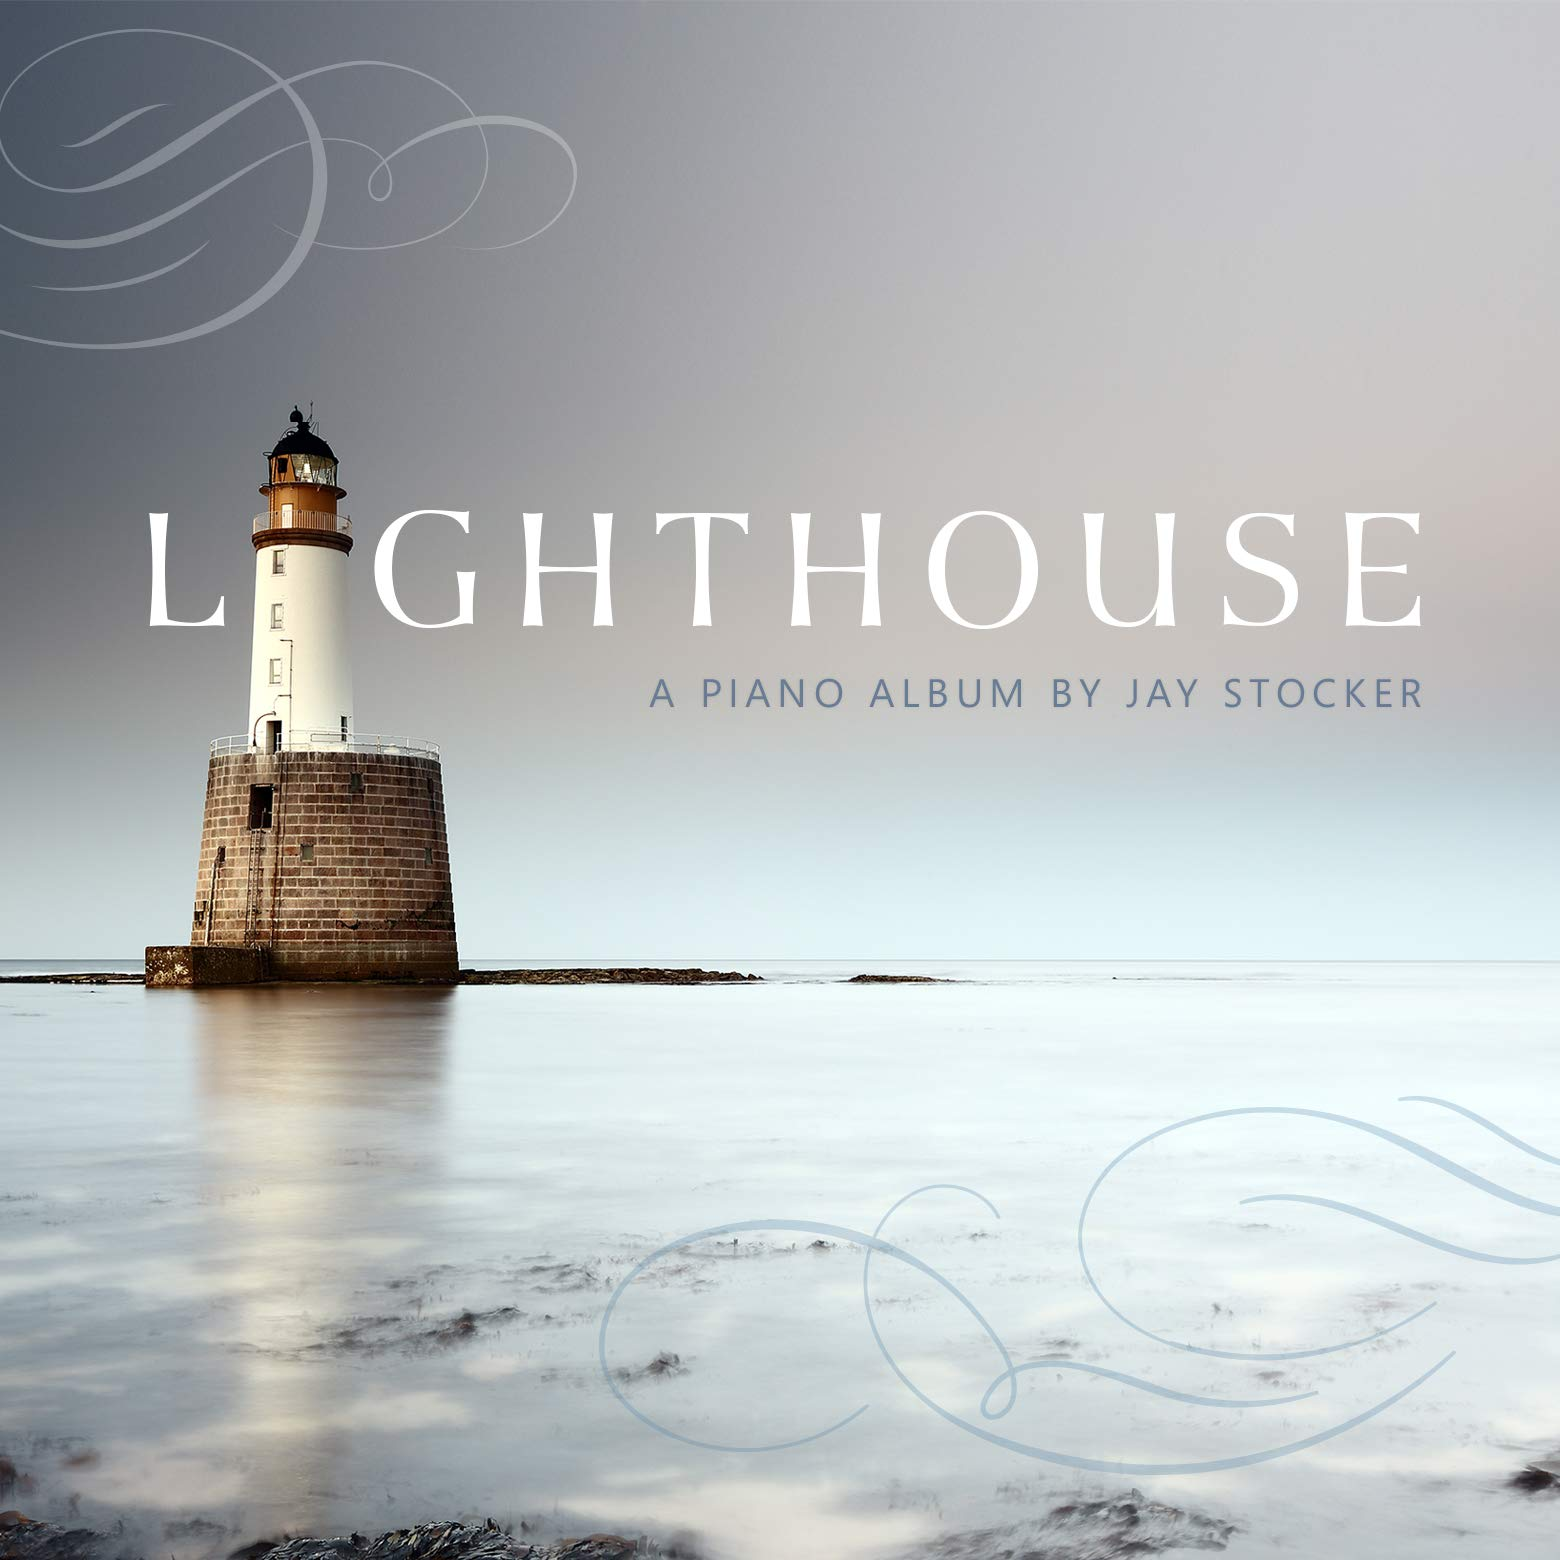 Lighthouse, A Piano Album – Instrumental album From the creators of Scripture Lullabies